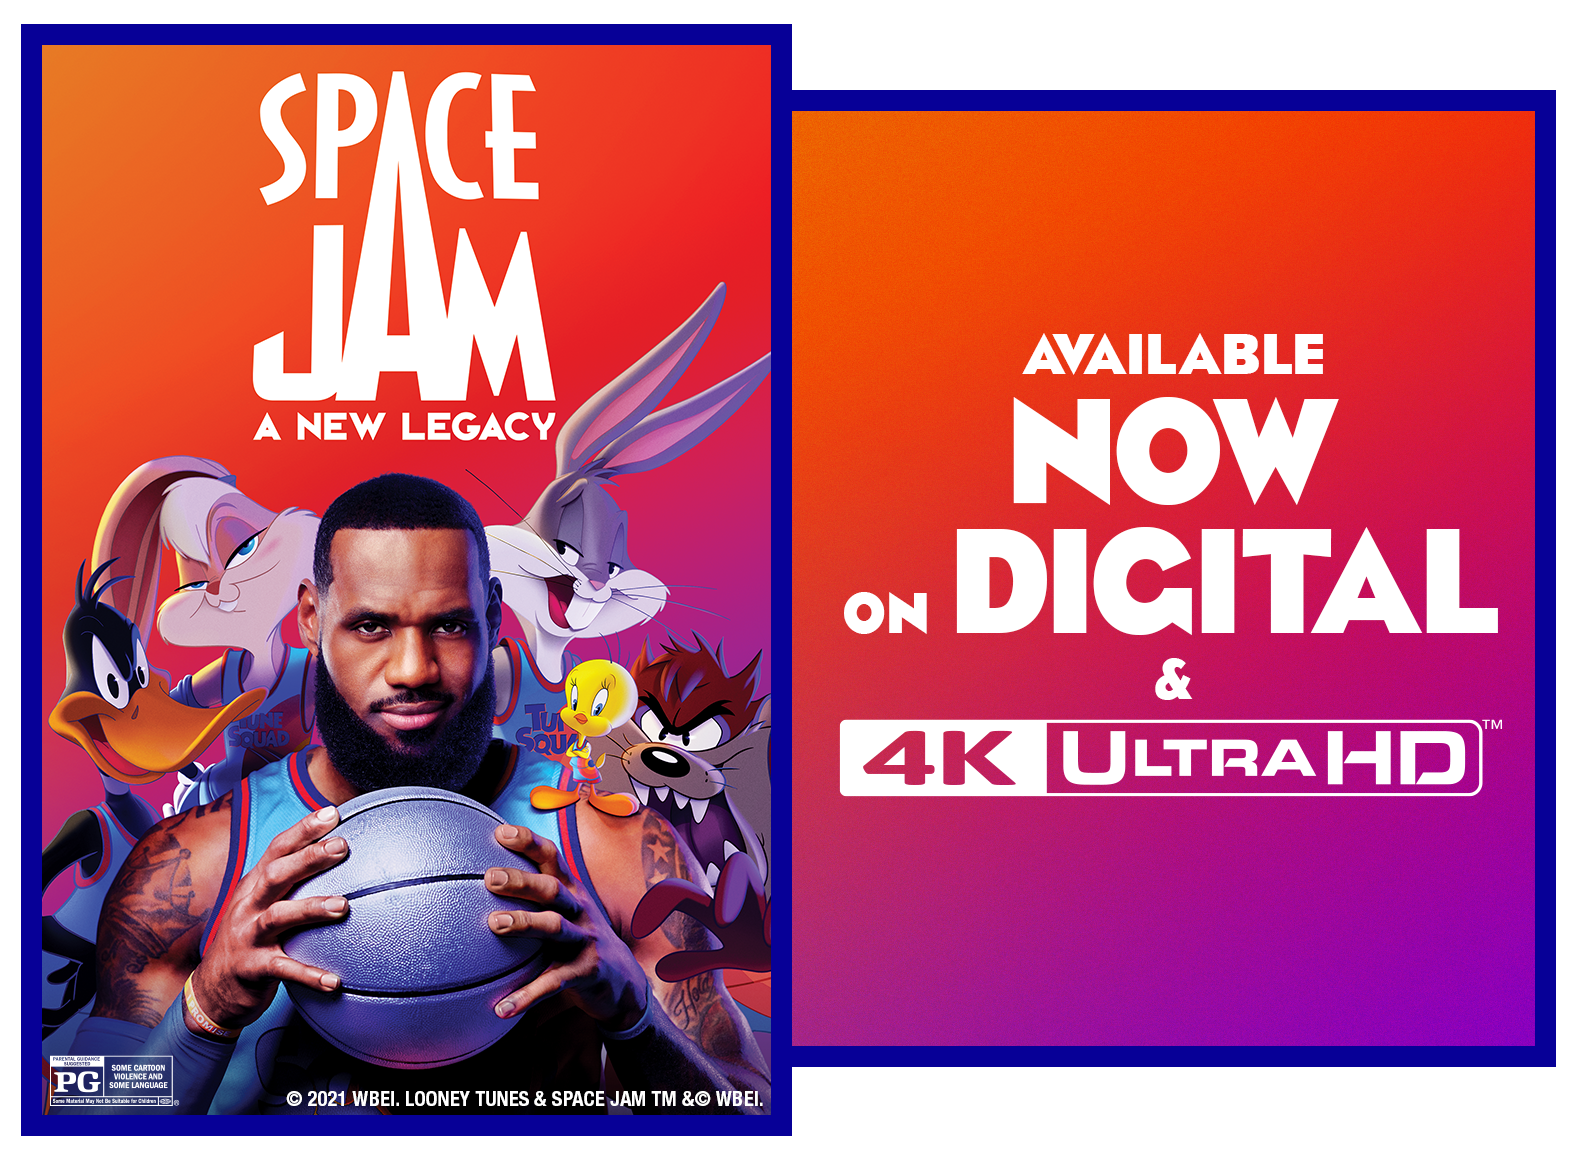 Space Jam: A New Legacy image poster & sweepstakes